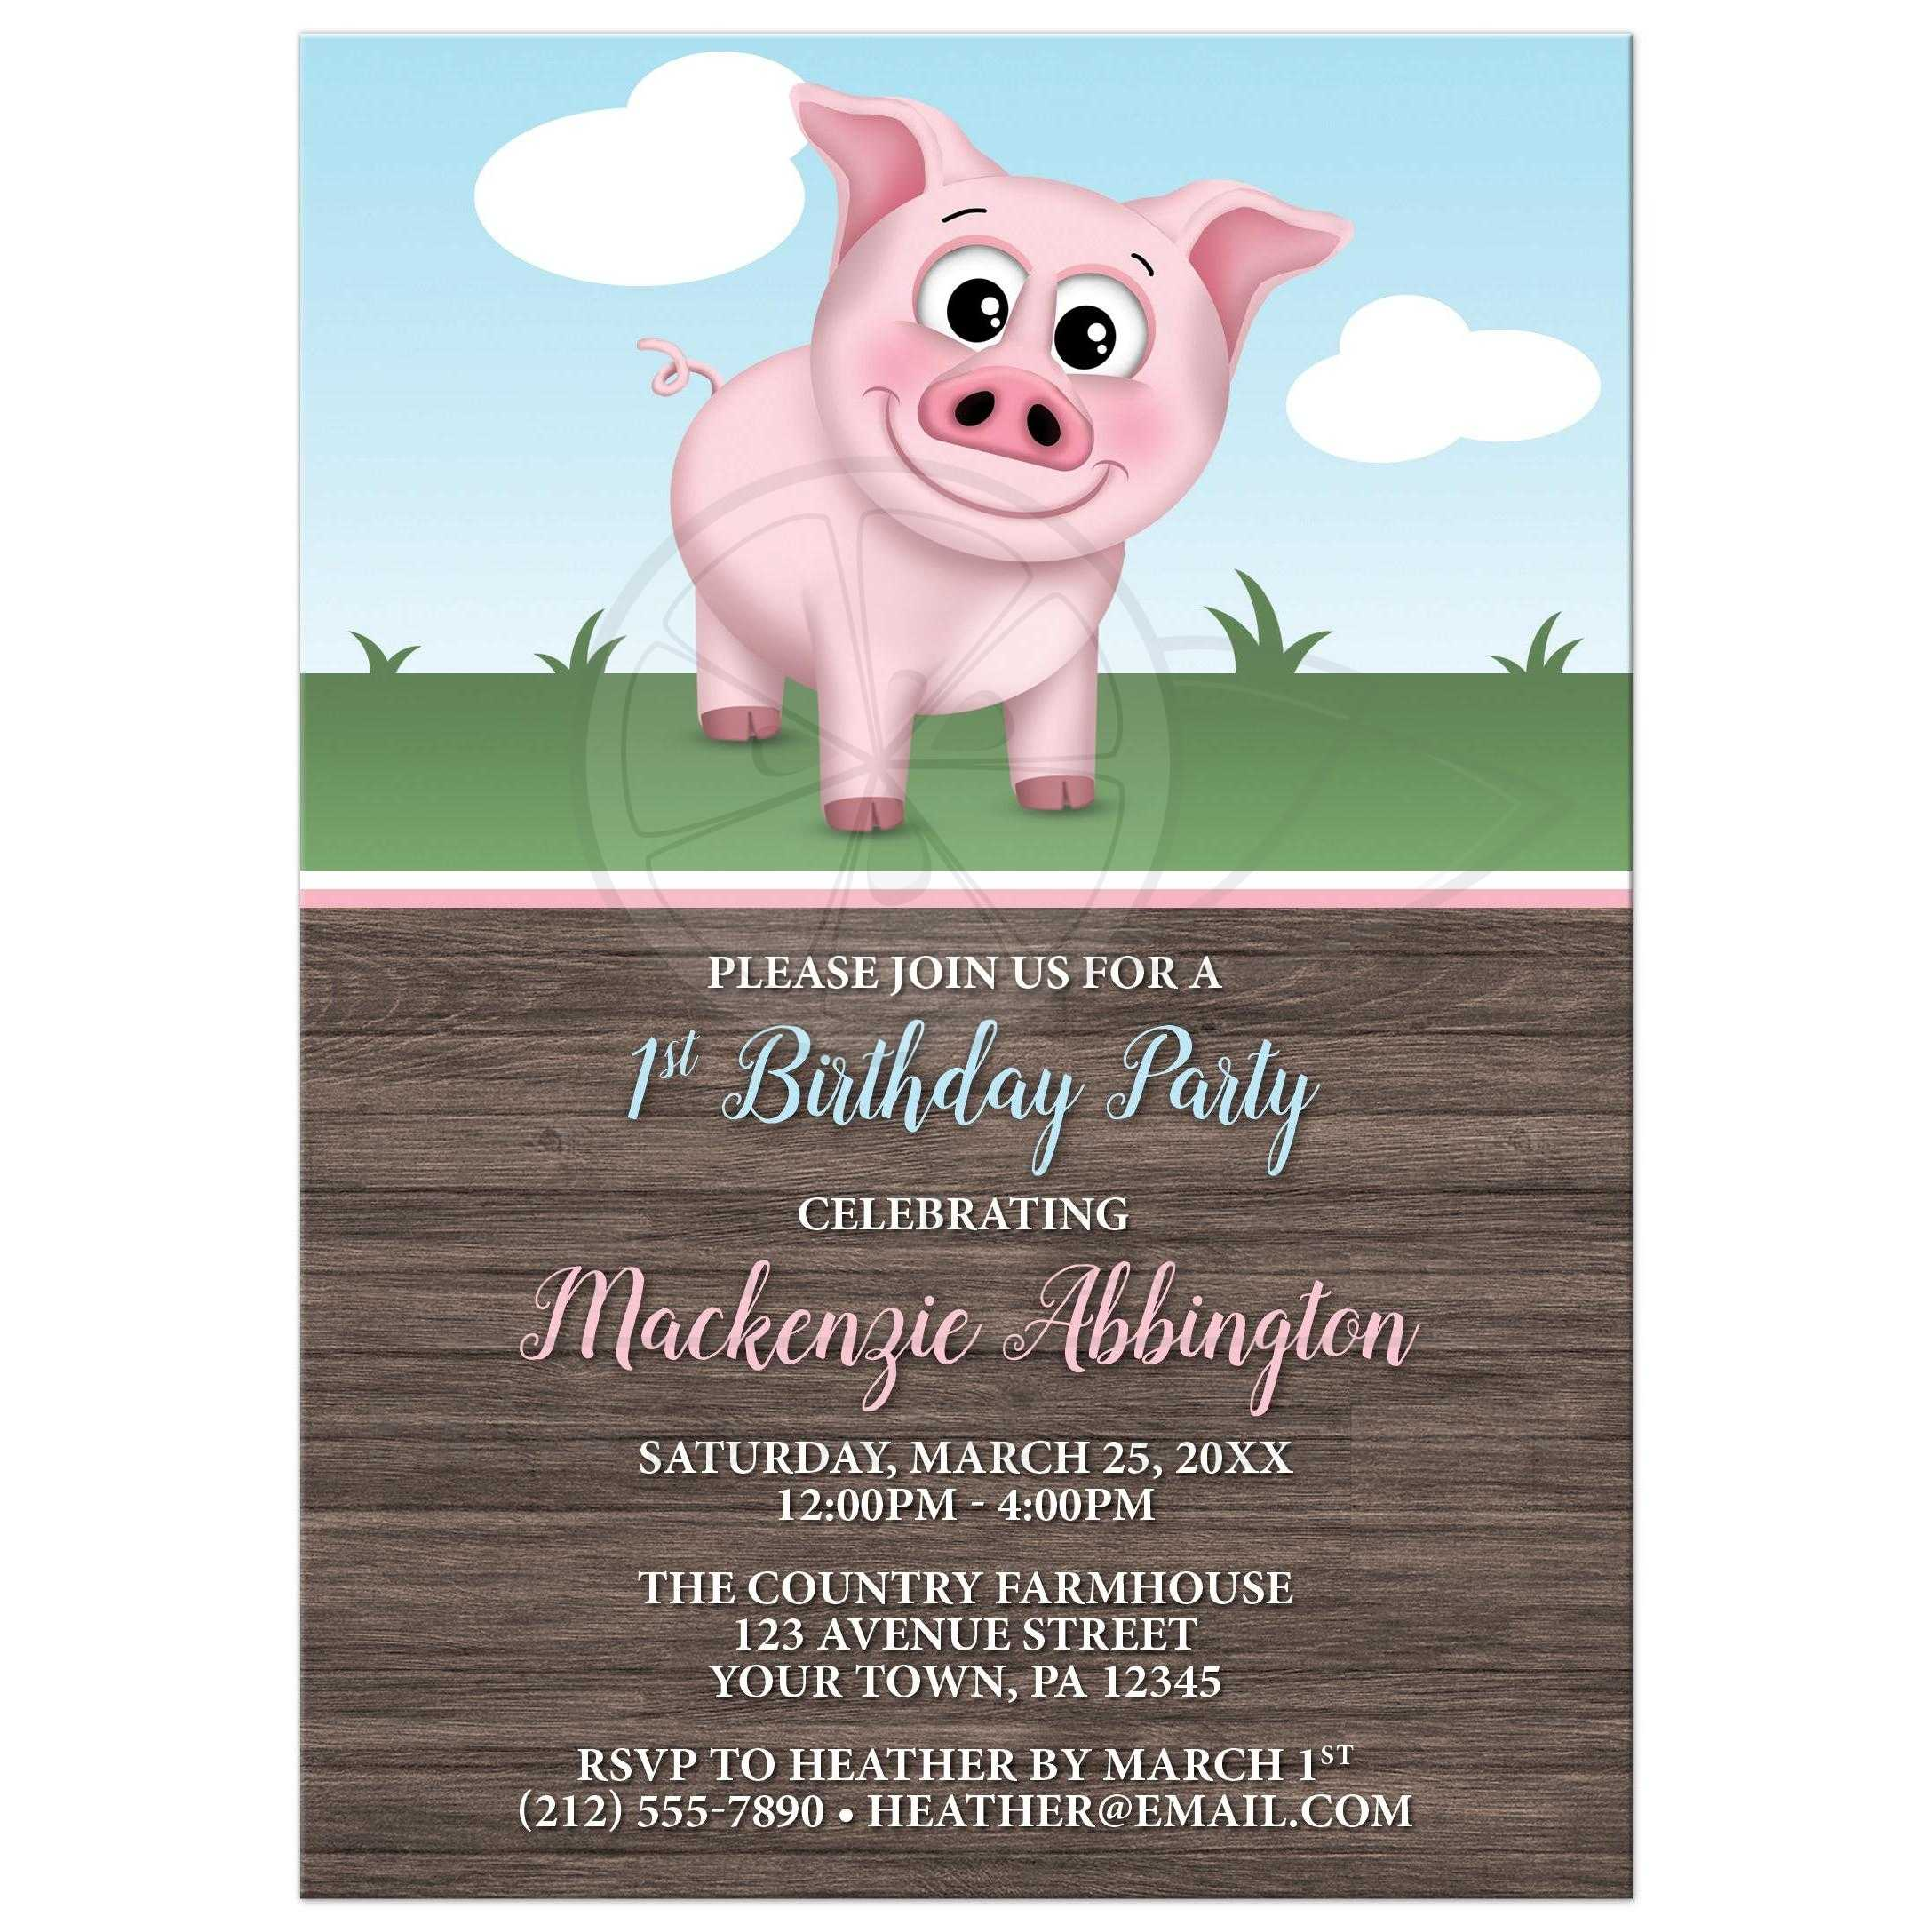 Birthday Party Invitations Happy Pink Pig on the Farm Barnyard